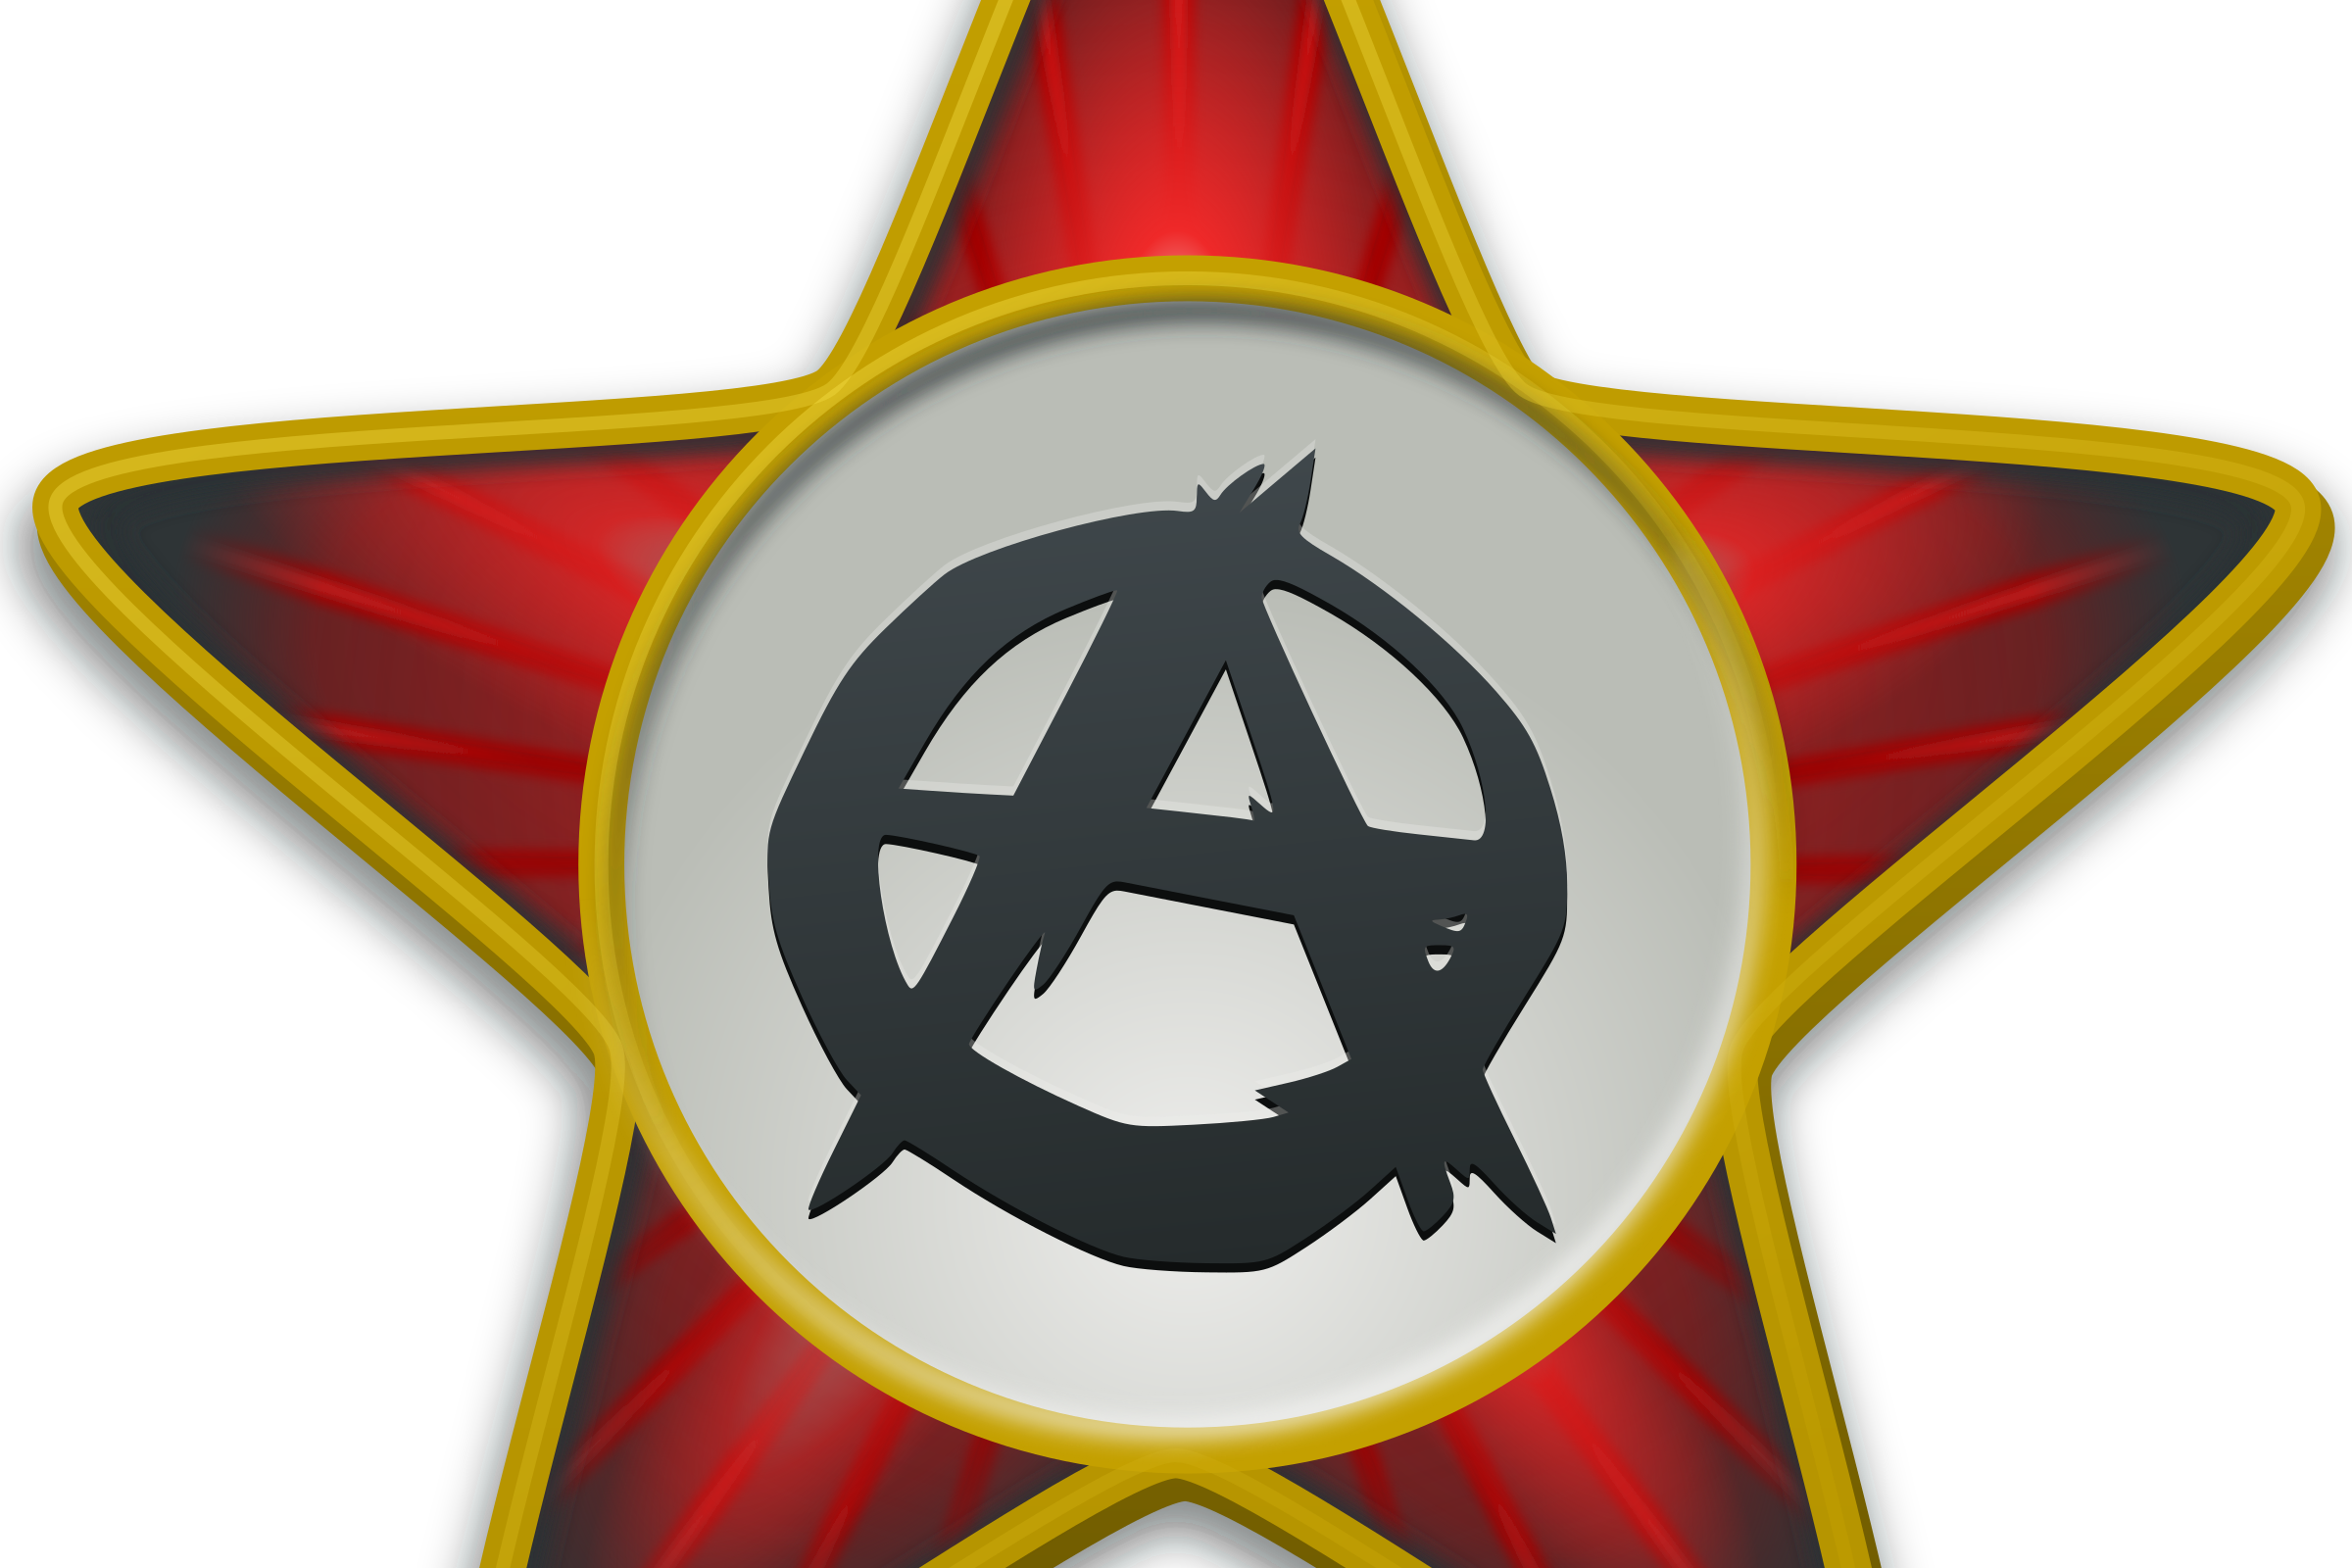 Anarchist star by vicing